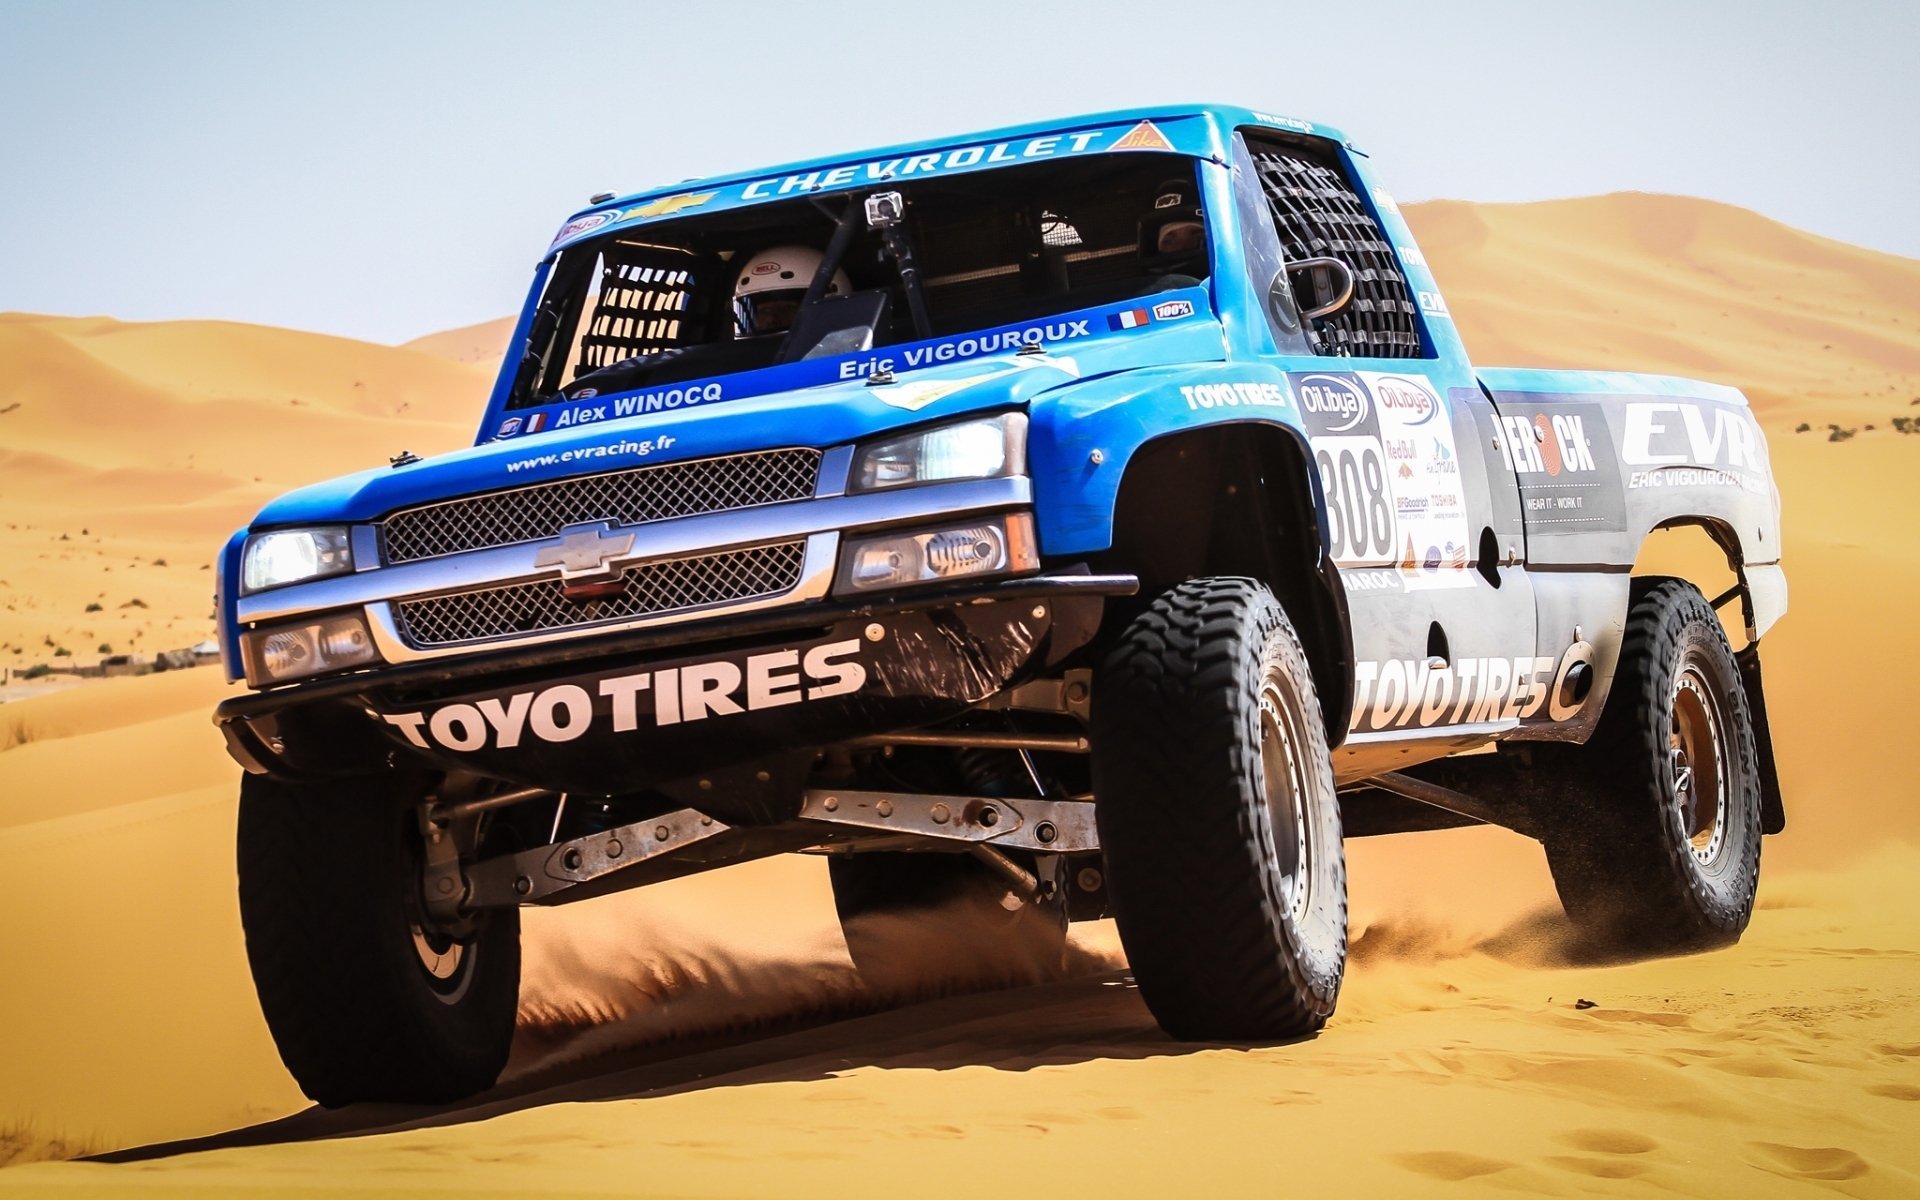 Trophy Truck Wallpaper Pictures 61391 1920x1200px